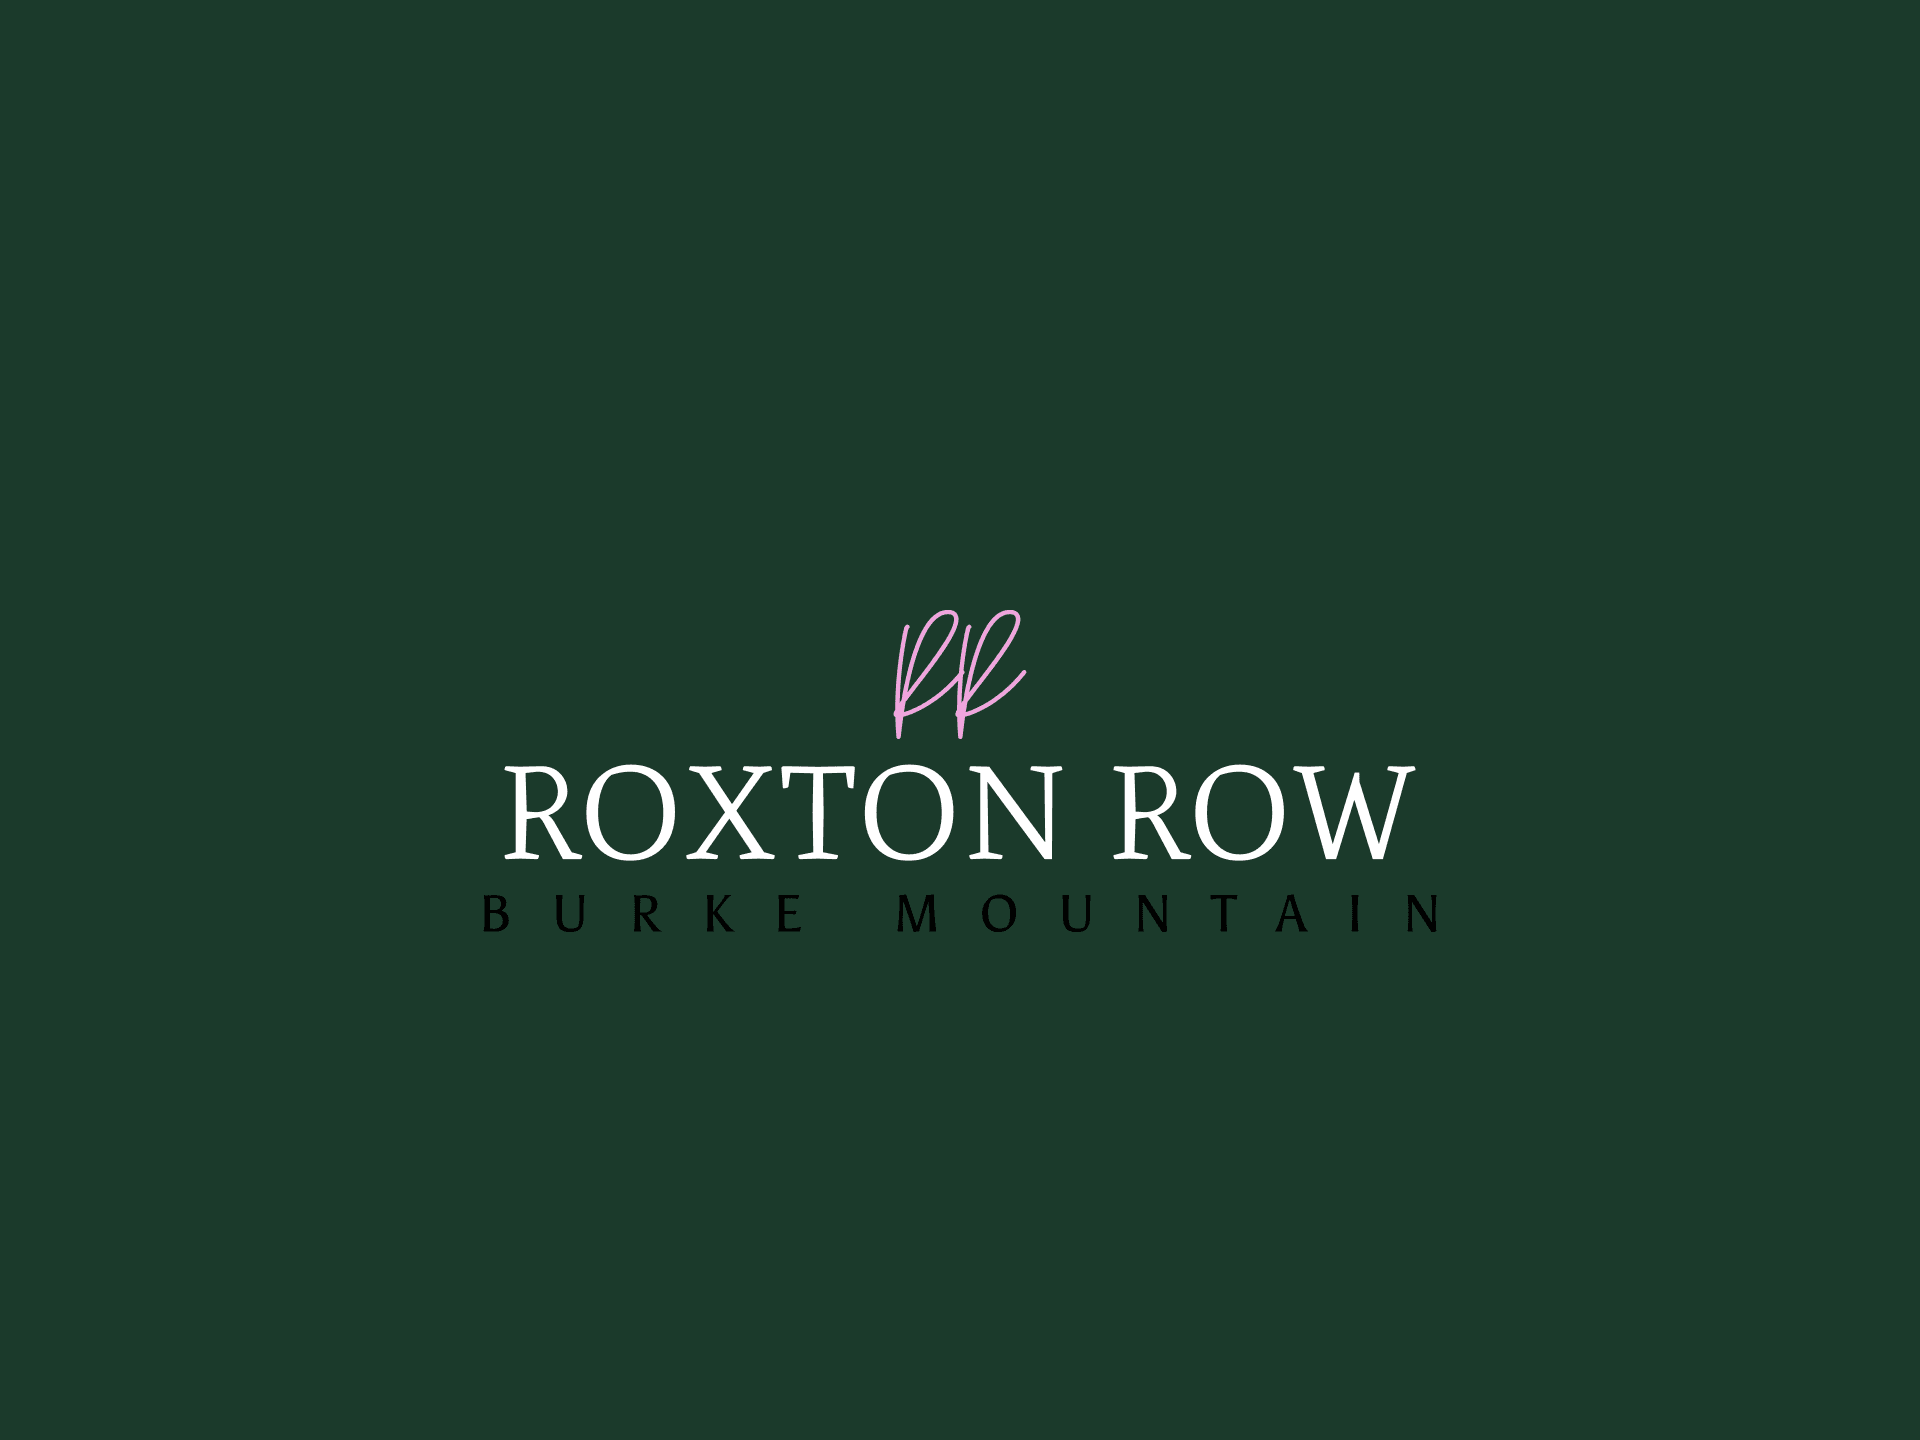 Main Photo: Roxton Row Burke Mountain Row Homes Coquitlam